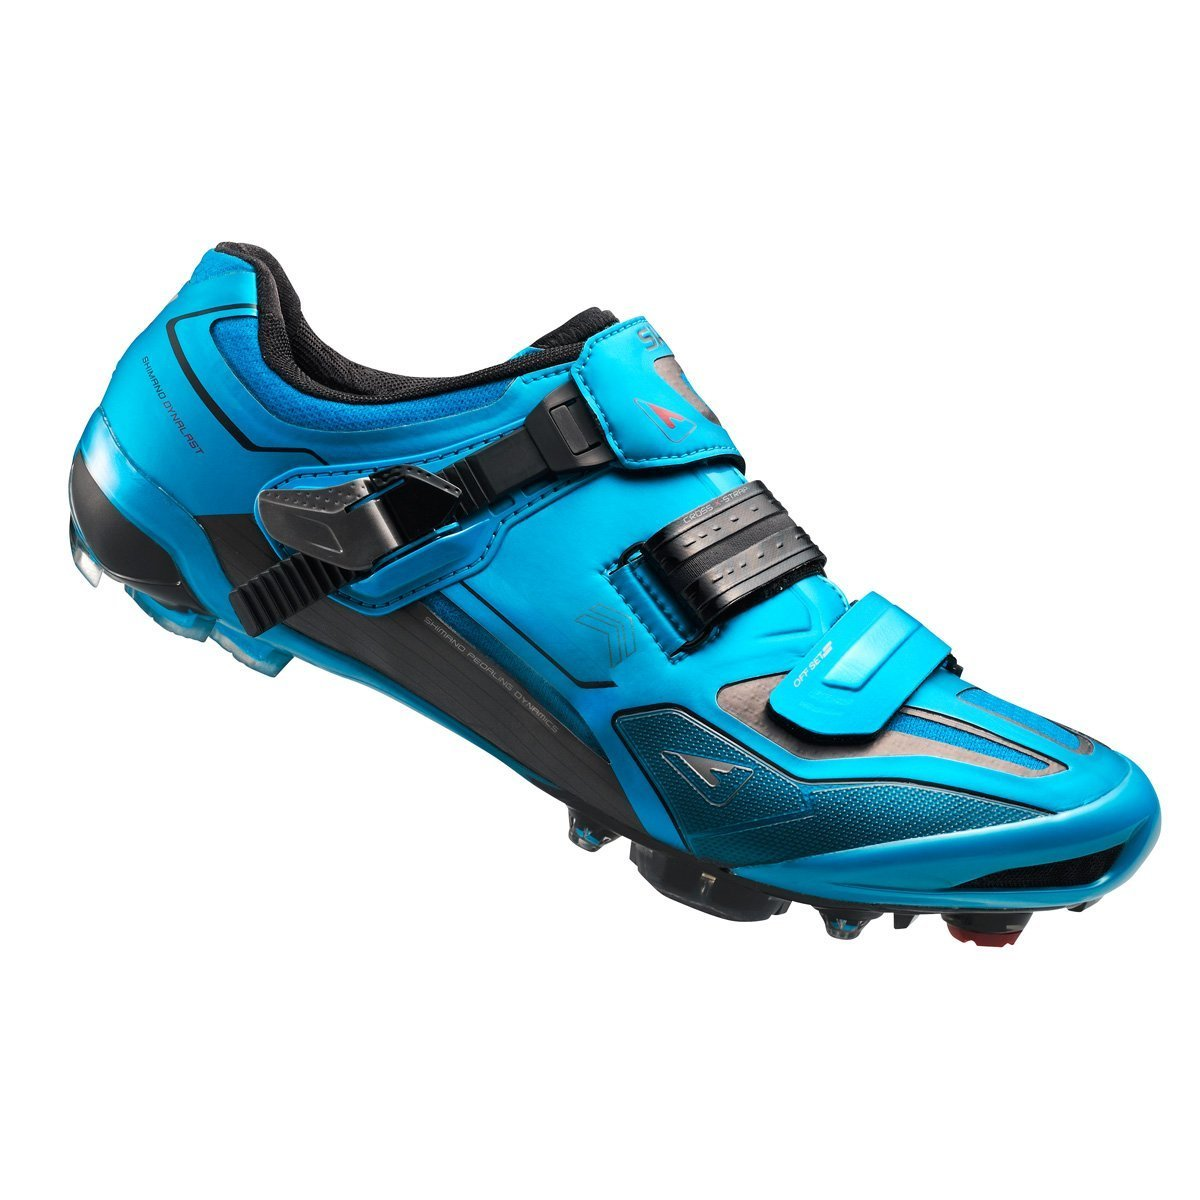 Shimano 2016 Men's Pro XC Custom Fit Mountain Bike Shoes - SH-XC90B (Blue - 45.0)